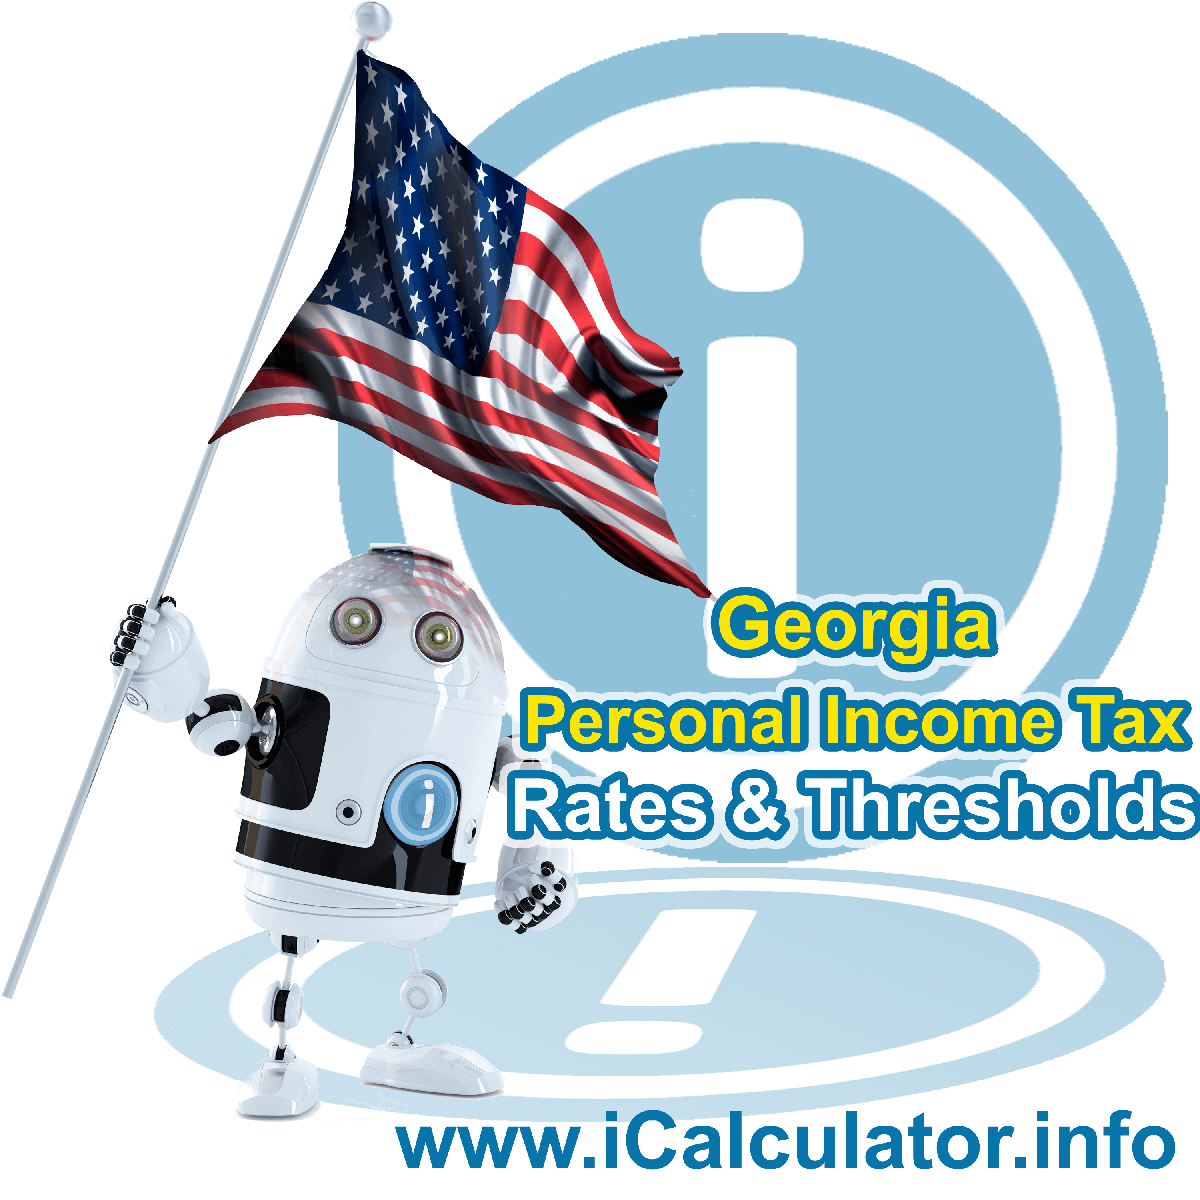 Georgia State Tax Tables 2015. This image displays details of the Georgia State Tax Tables for the 2015 tax return year which is provided in support of the 2015 US Tax Calculator